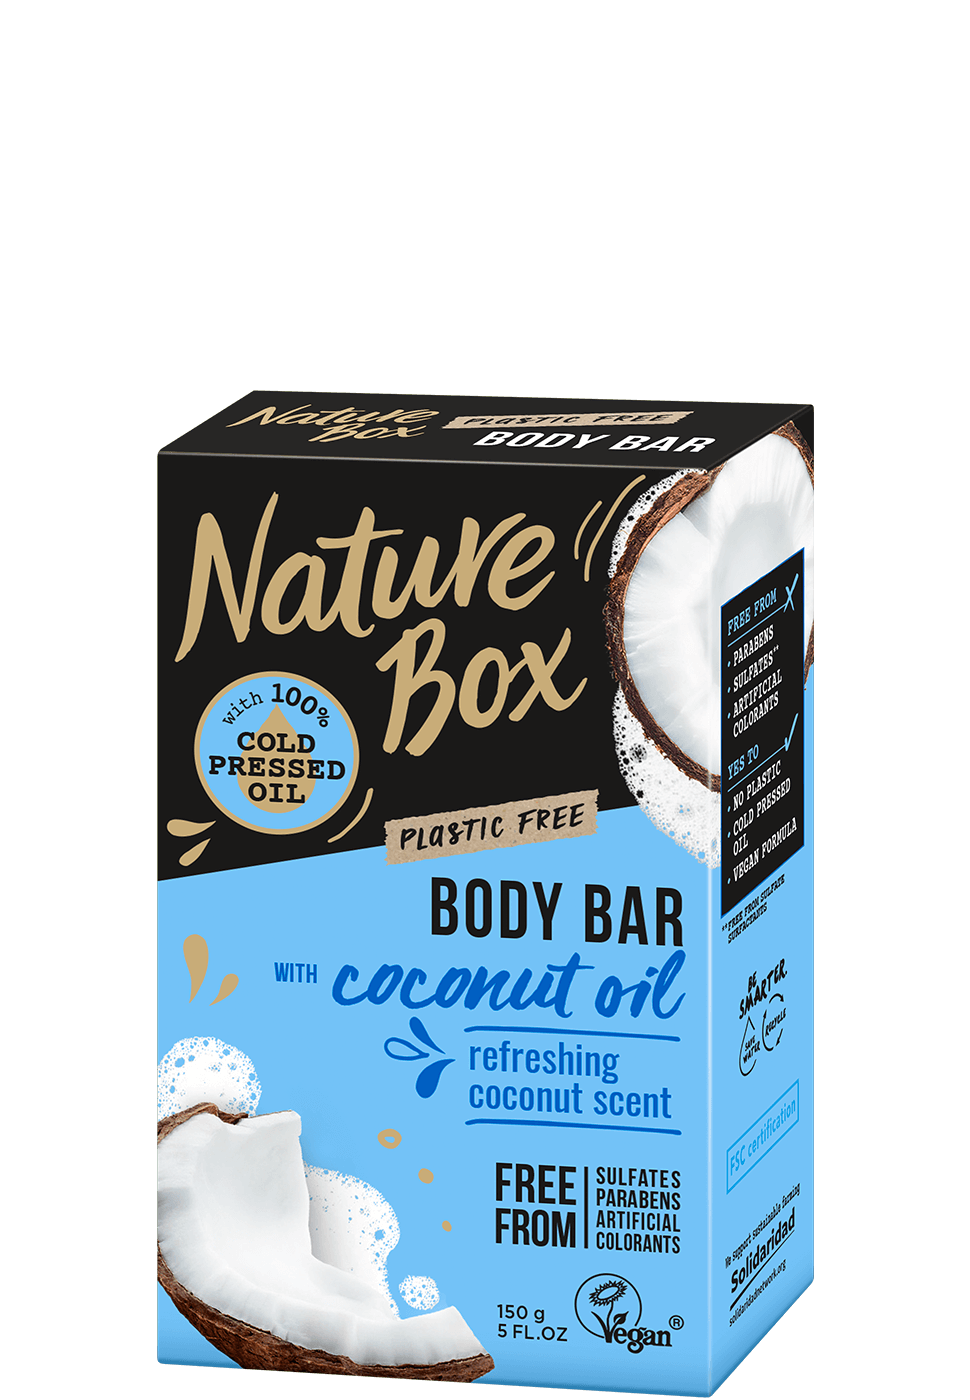 naturebox_com_body_bar_coconut_oil_970x1400